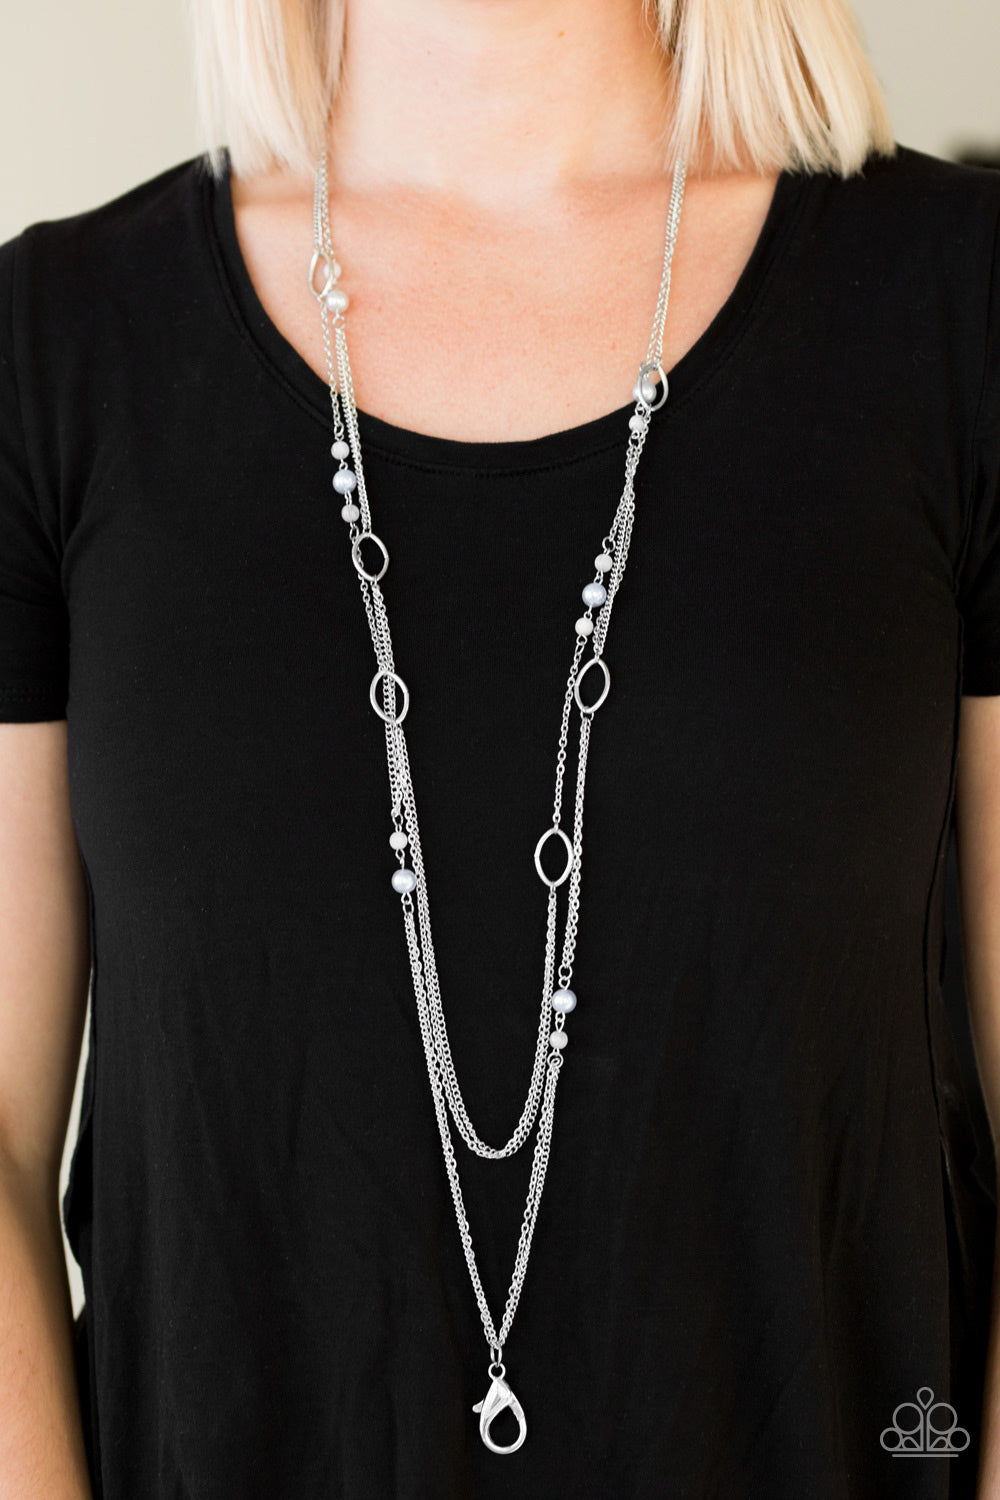 The New Girl In Town - Silver Lanyard (8833)